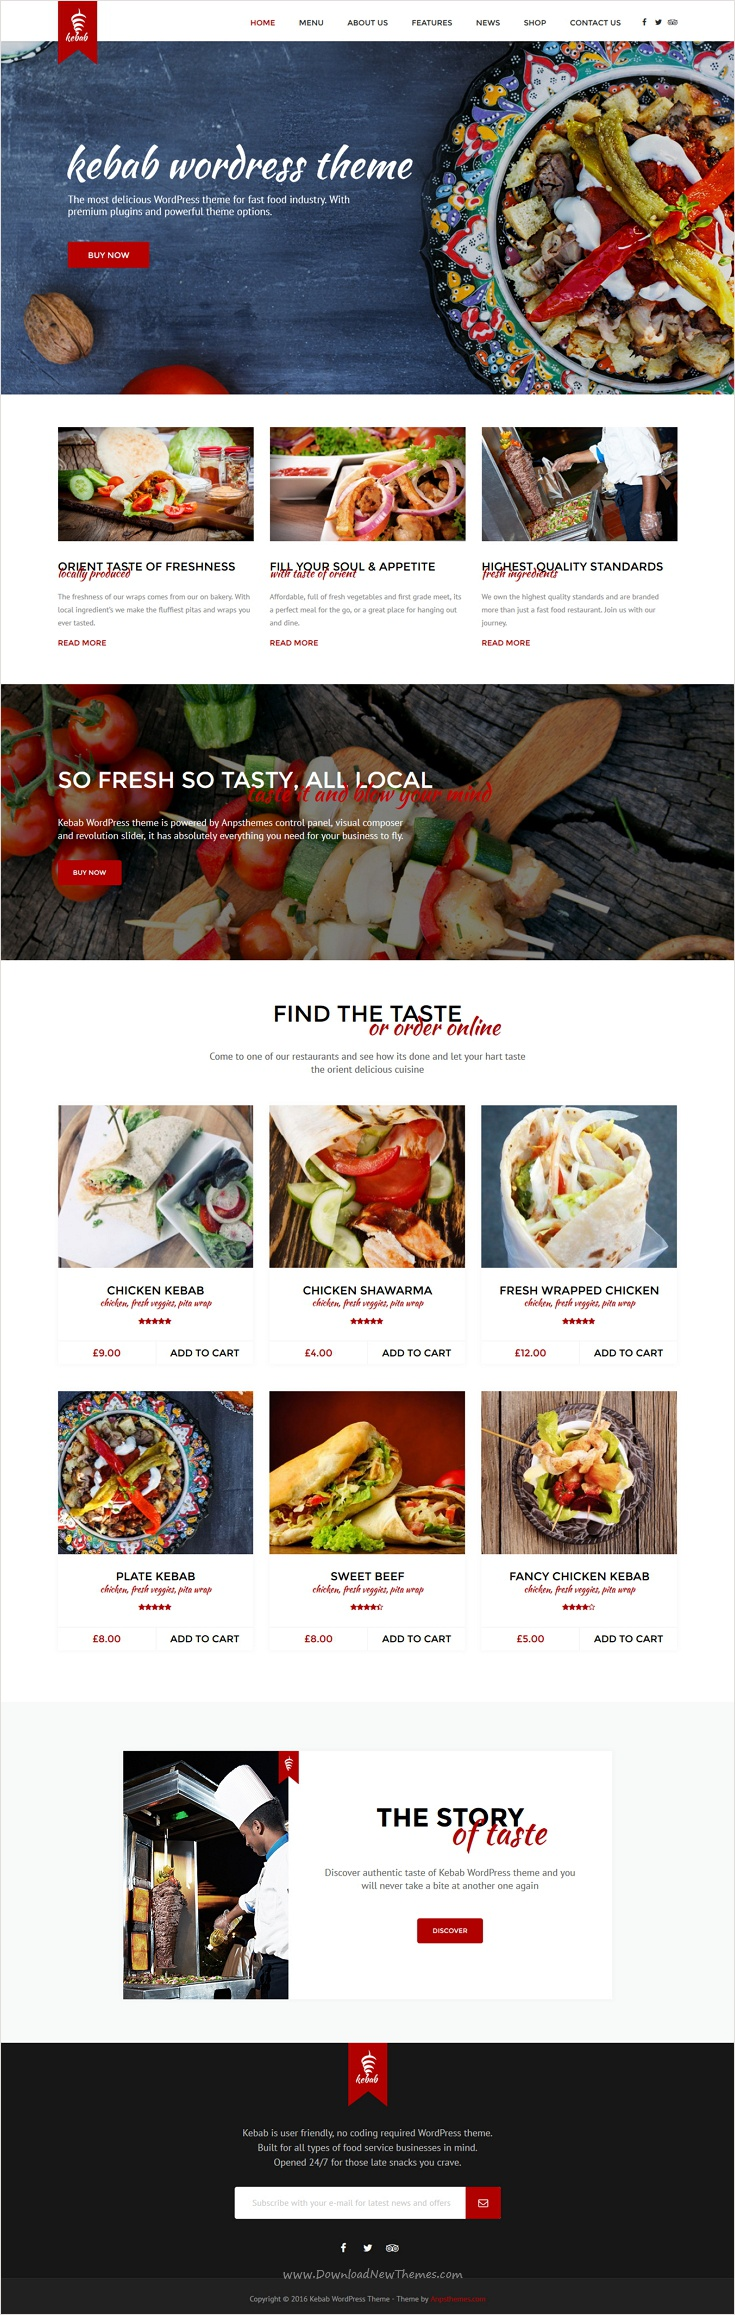 Kebab is a beautifully design 3 in 1 responsive #WordPress theme for restaurant, #cafe or fast food company #website download now➩ https://themeforest.net/item/kebab-fast-food-wordpress-theme/18124379?ref=Datasata